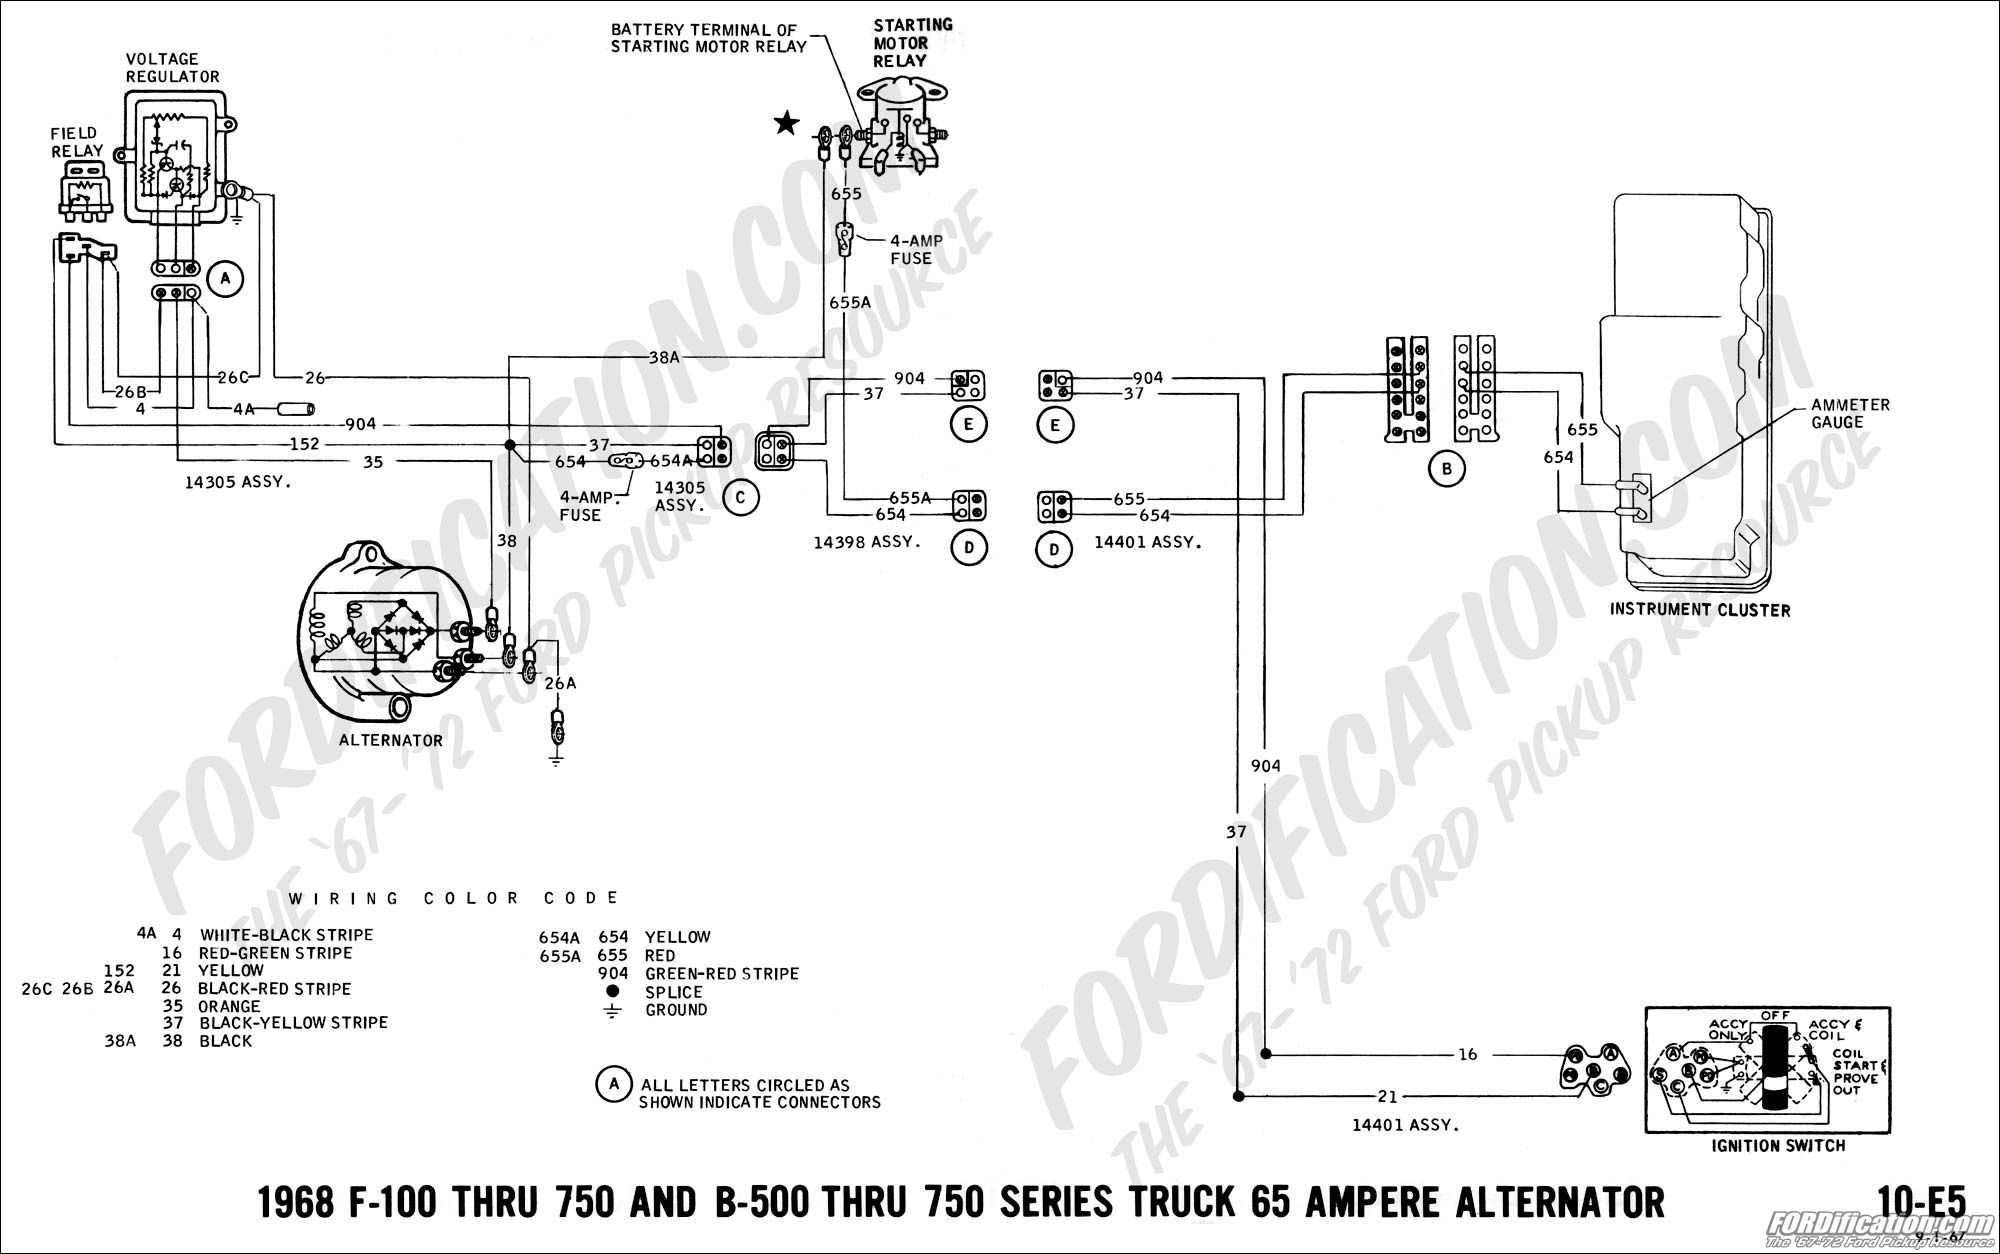 71 F100 Alternator Wiring Diagram All Data 1971 Nova Factory 1969 Ford